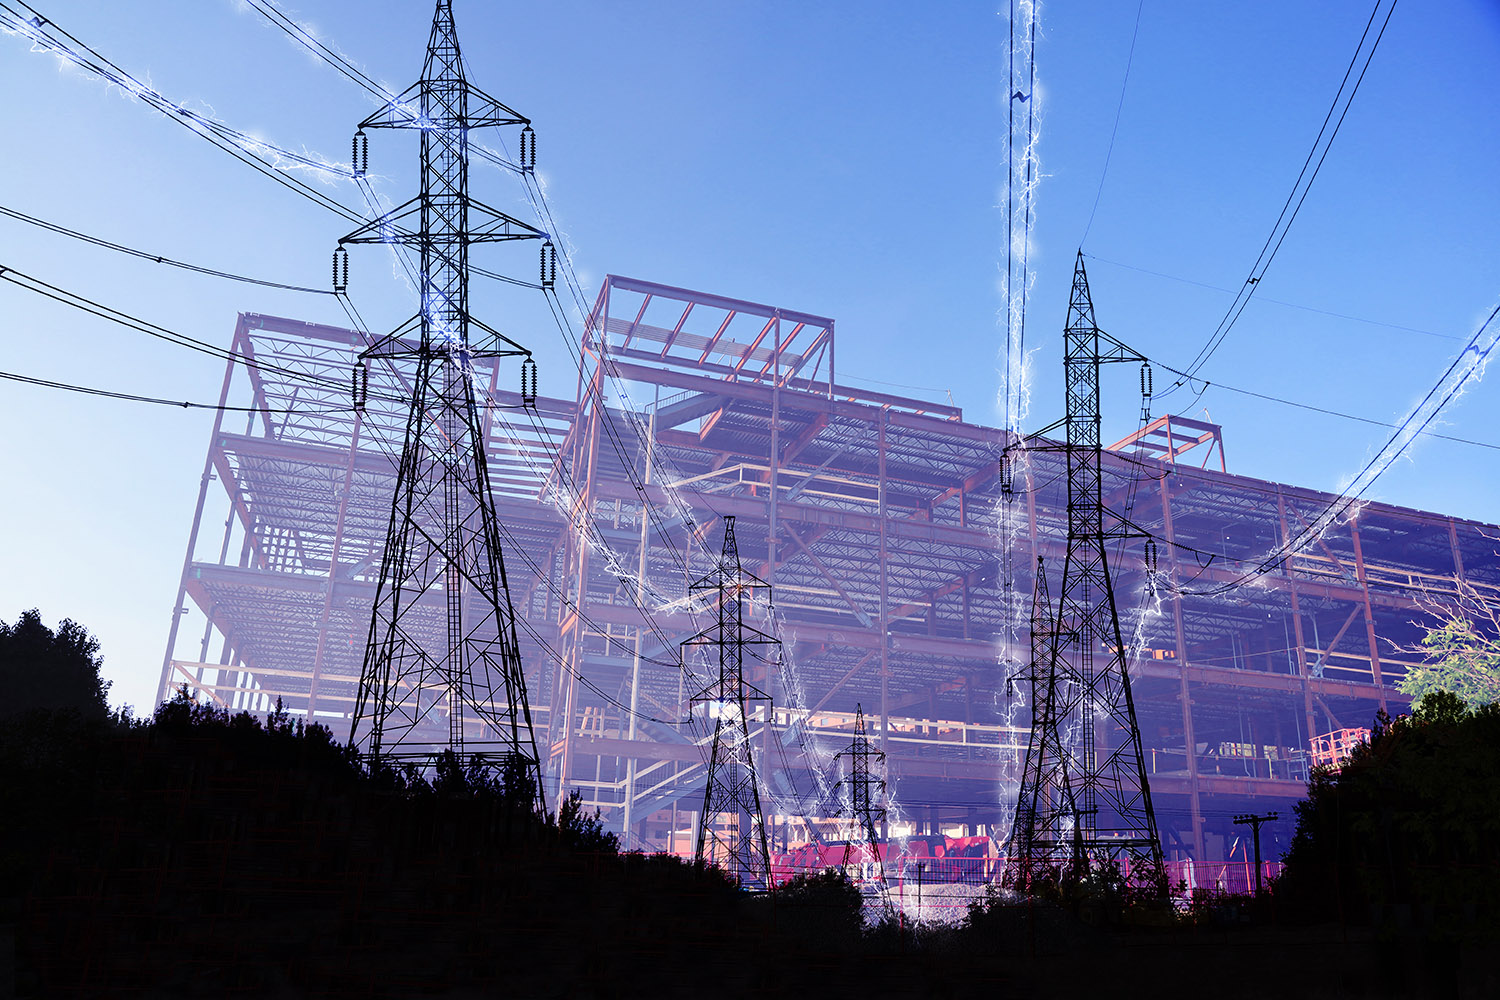 Construction Industry Electrification in Blue - RF Stock Image